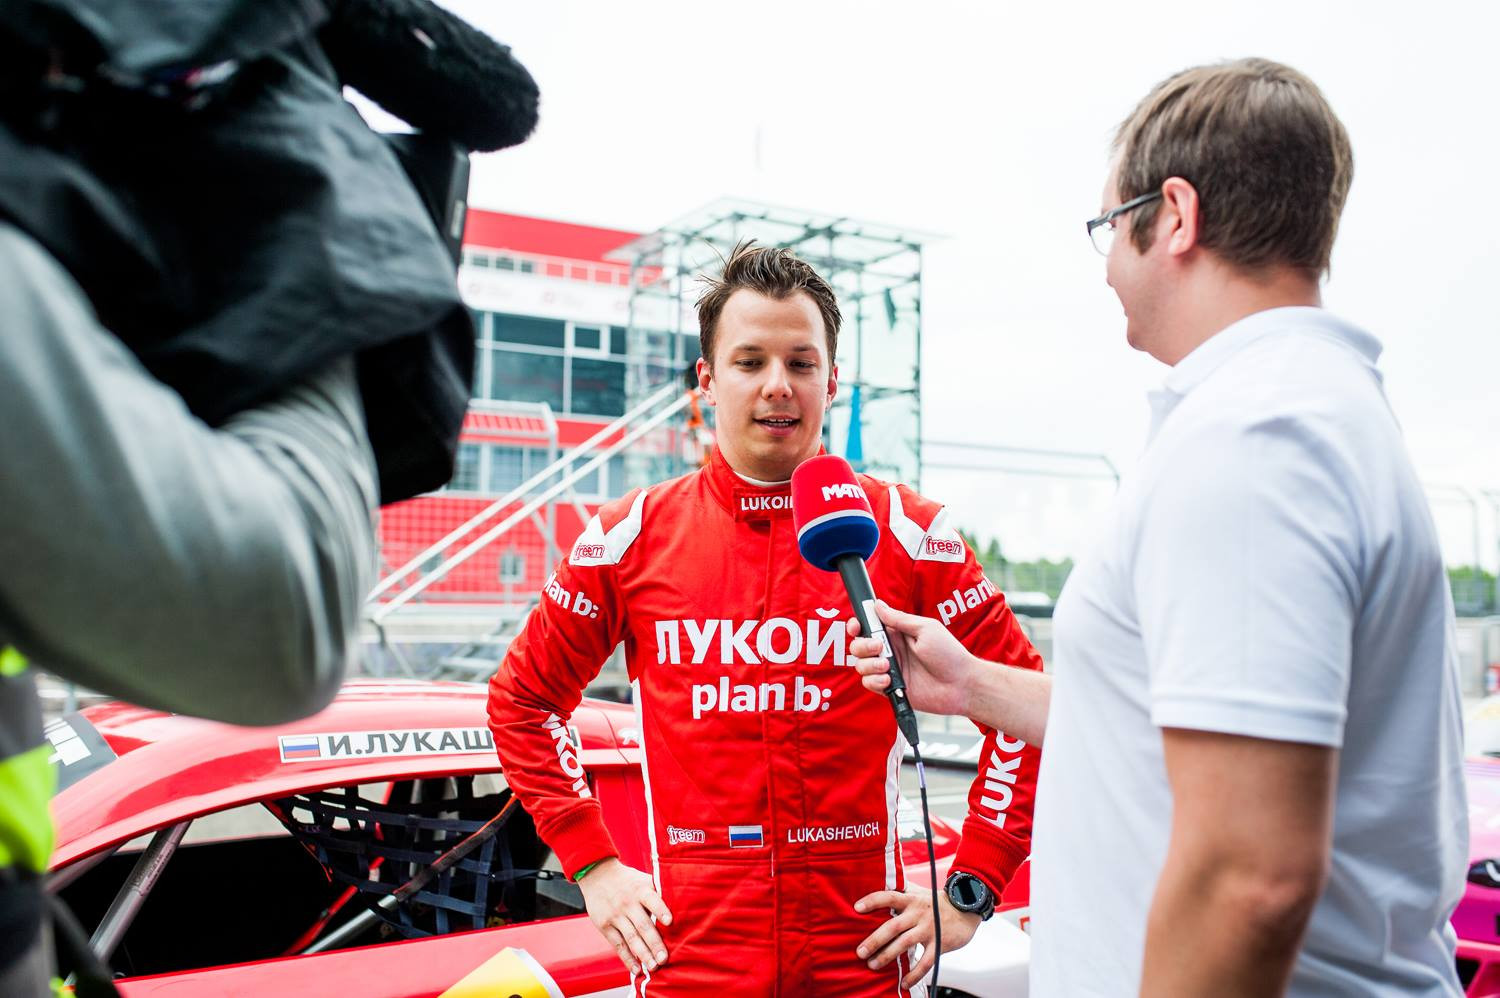 After-race interview